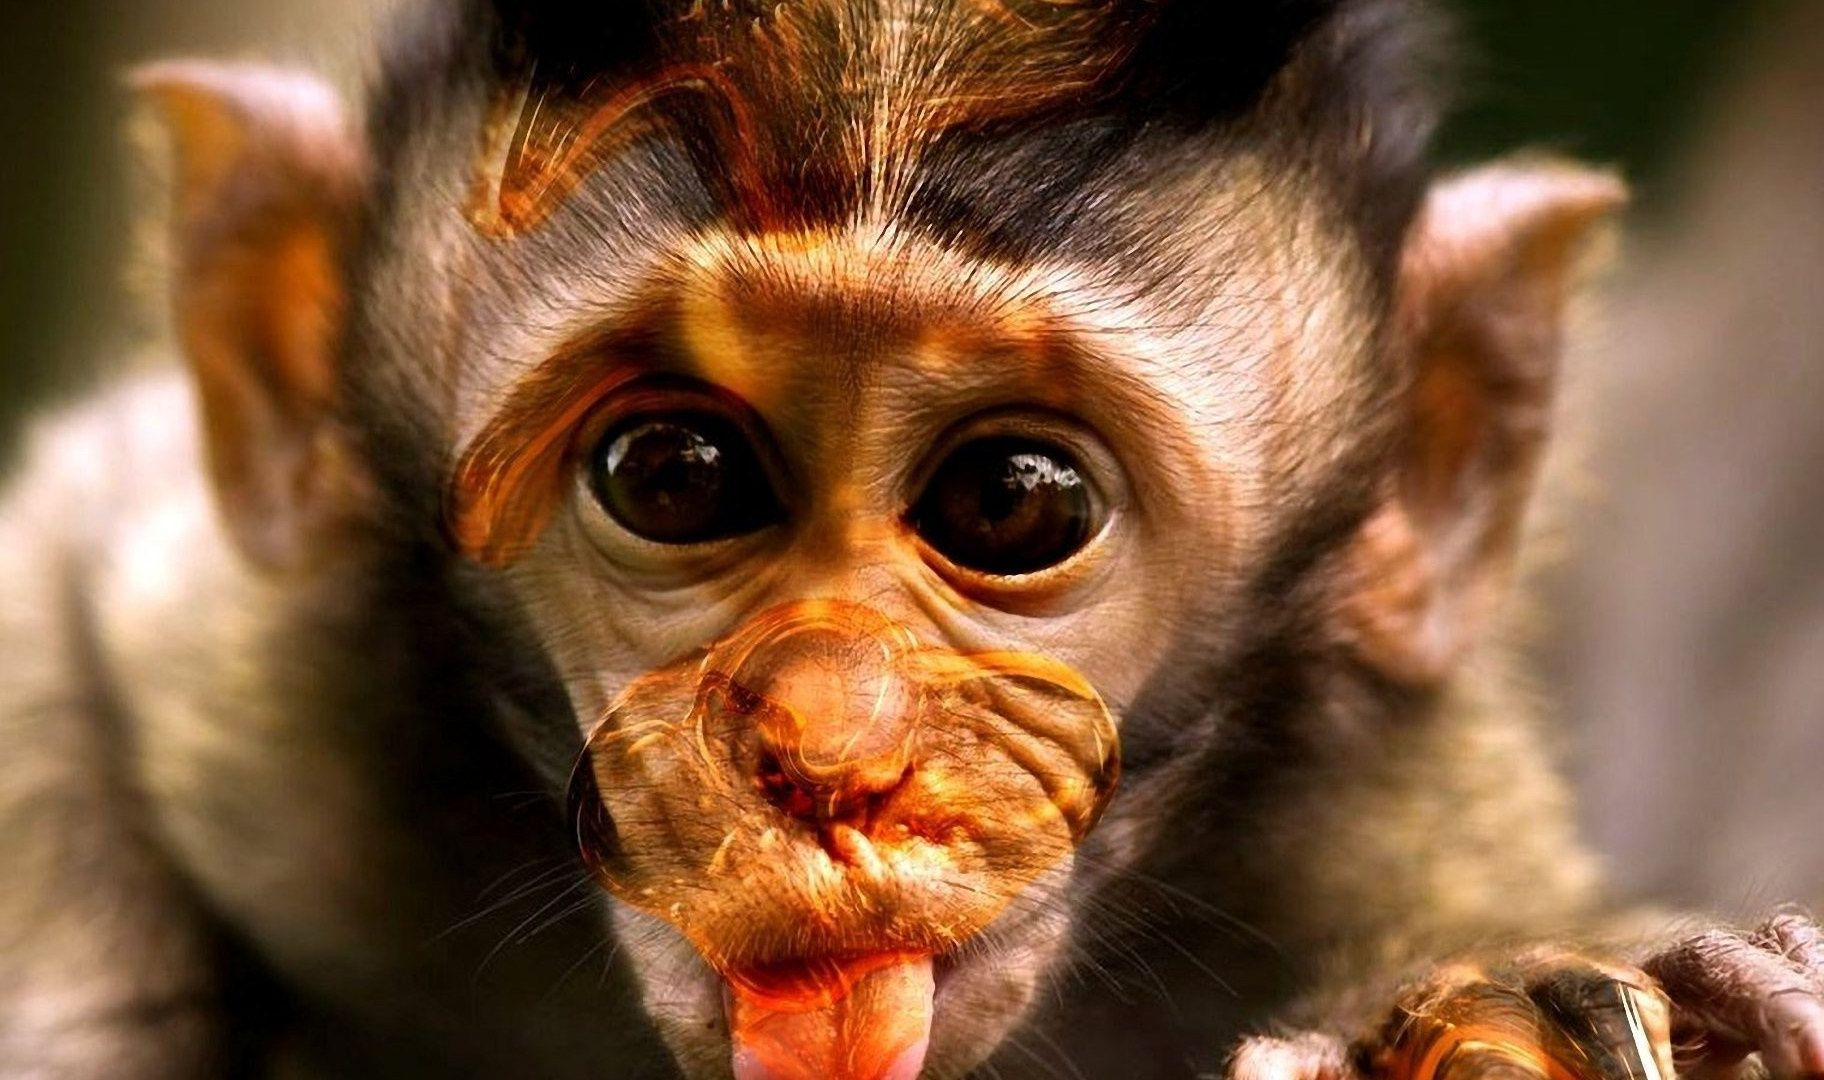 Monkey Wallpaper cartoon monkey wallpaper | hd wallpapers | pinterest | funny